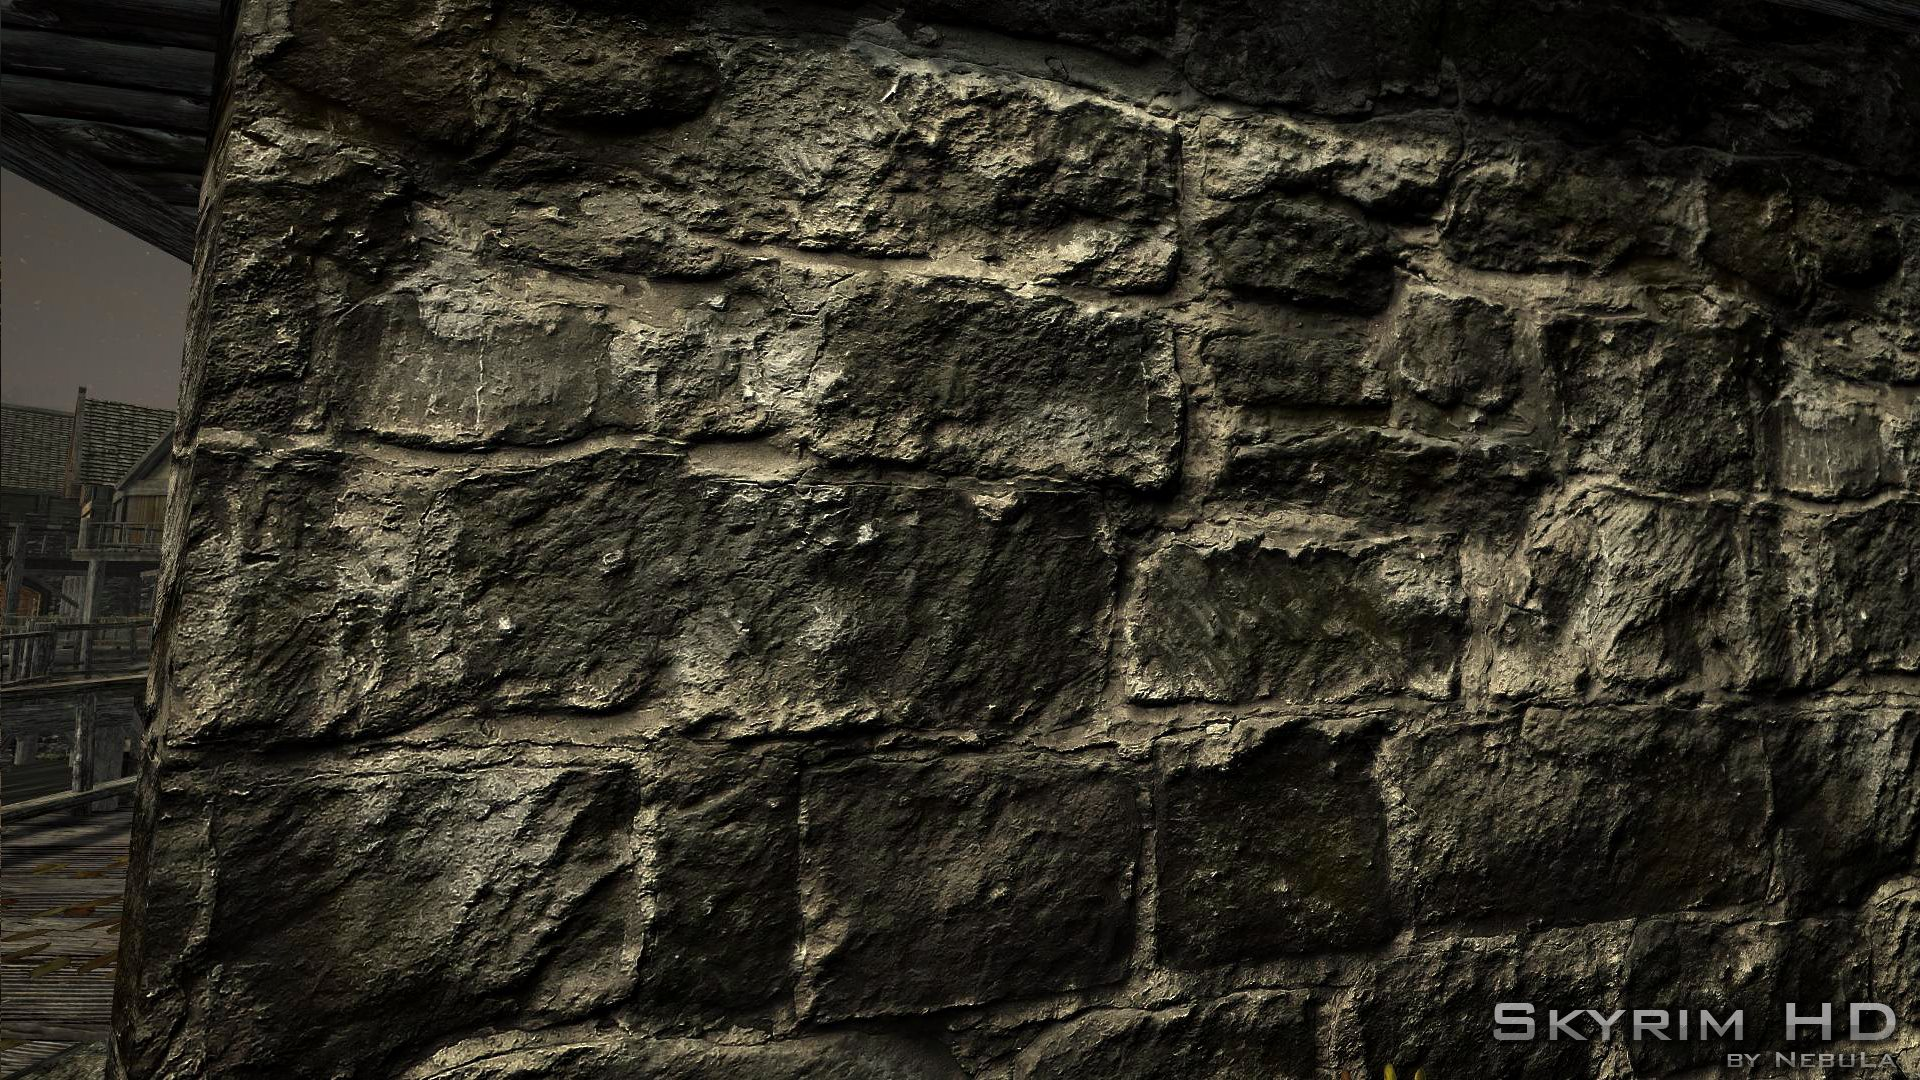 Special: The Elder Scrolls Forge: Texture & Lighting for